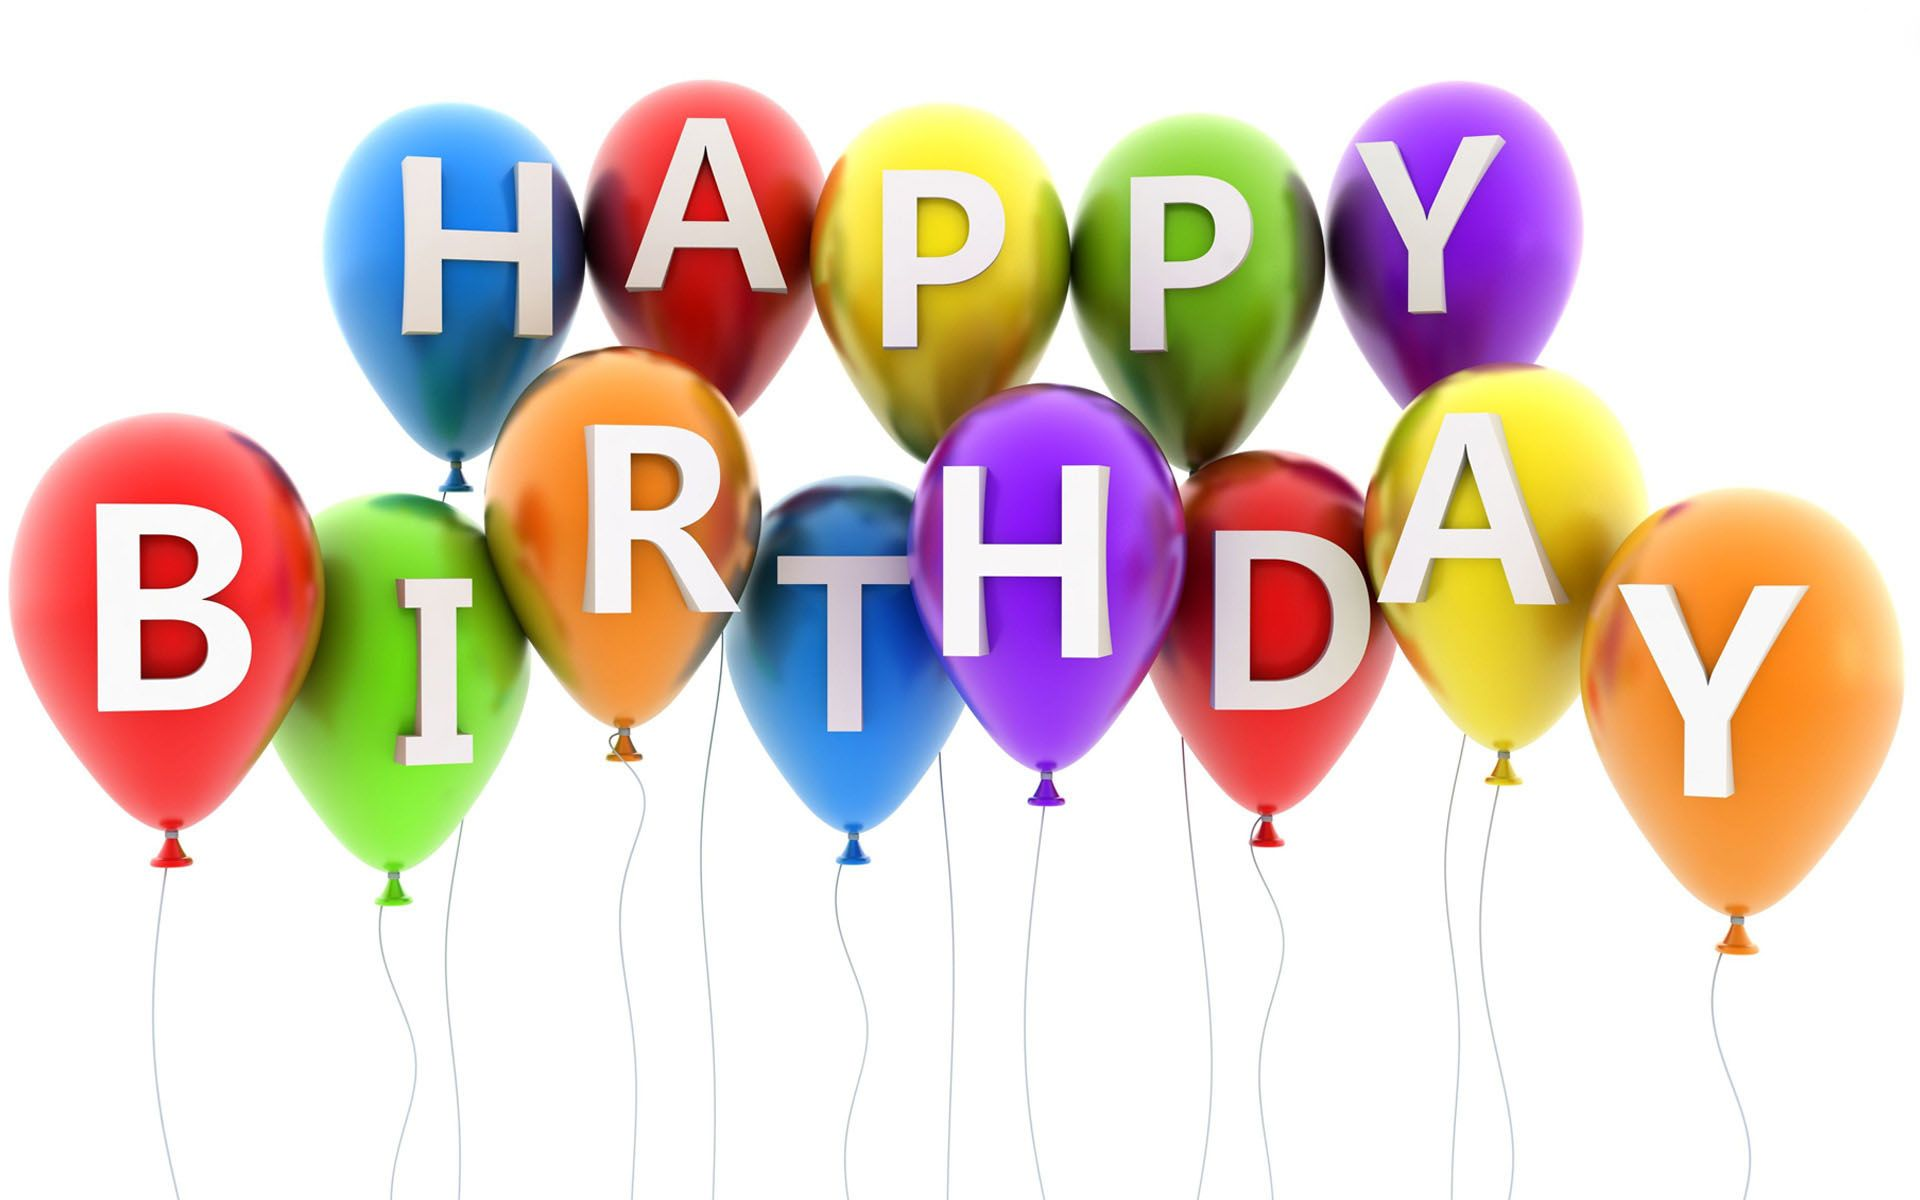 free happy birthday images to copy ; fdf9c0fcd1609354e7c3749b59a7d233